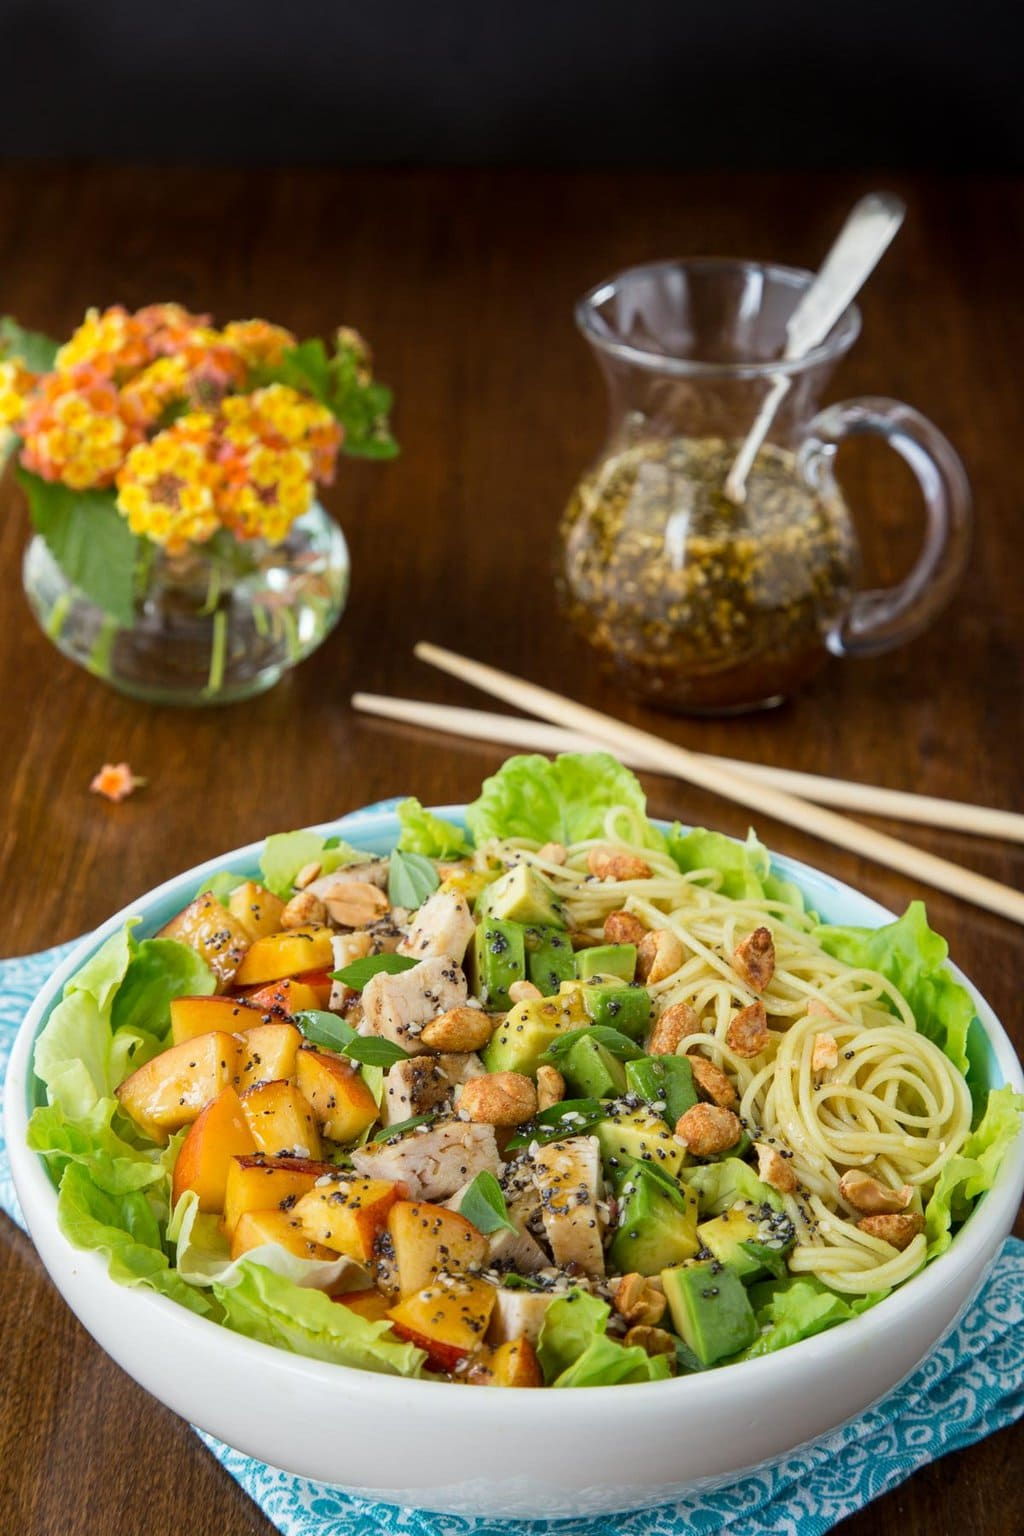 Vertical photo of a serving dish of Asian Chicken and Coconut Curry Noodle Salad.